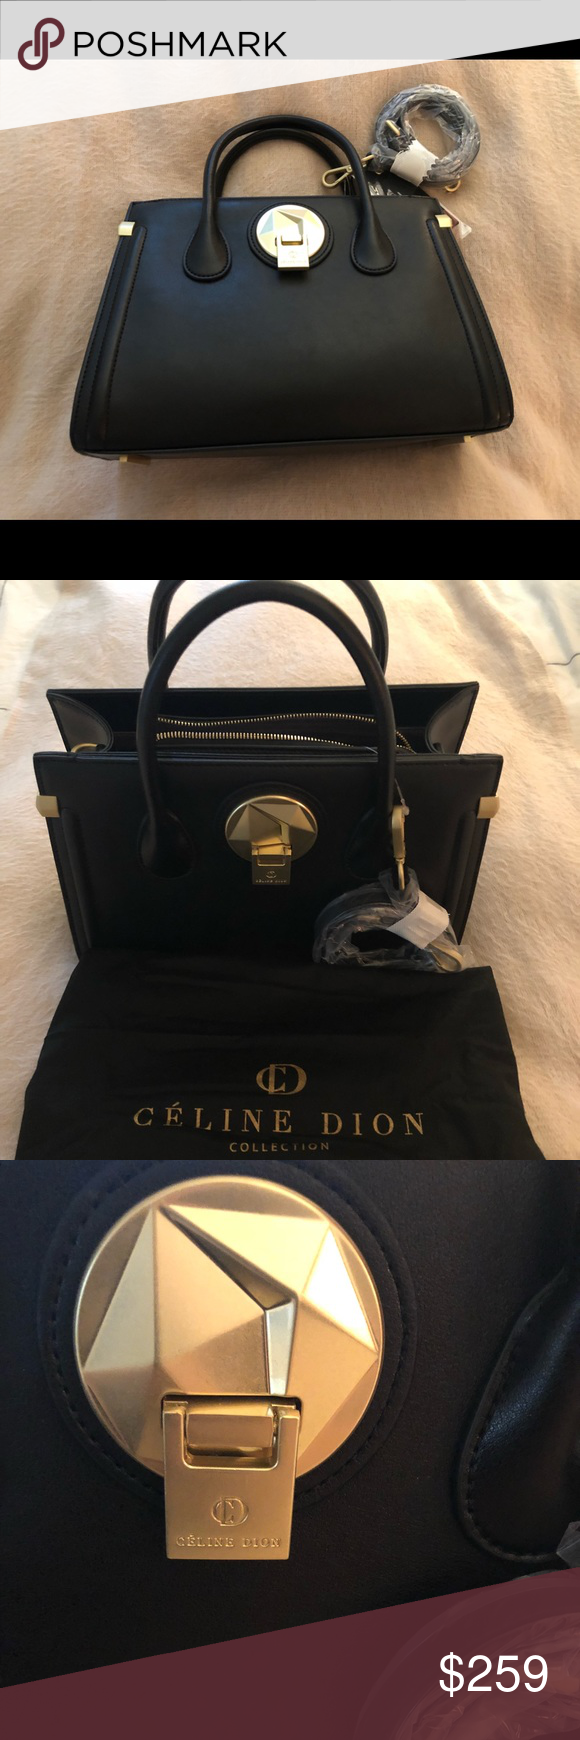 1715a4a849 Celine Dion Octave Leather Bag Brand new with tag attached and dust bag  included. Removable strap for dual style  satchel or crossbody celine dion  Bags ...